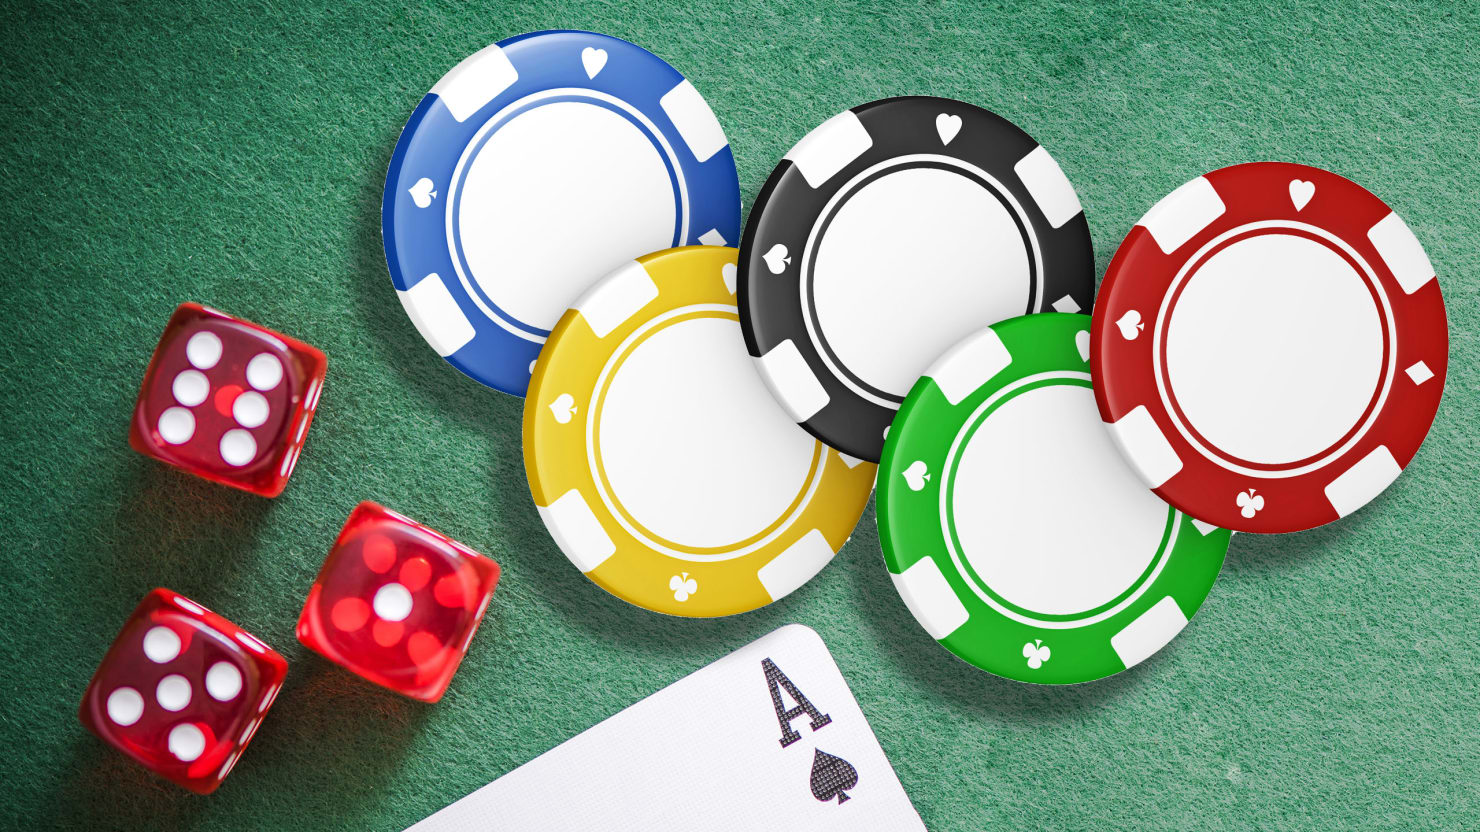 Improve your gaming experience by learning the rules and regulations of online casinos.